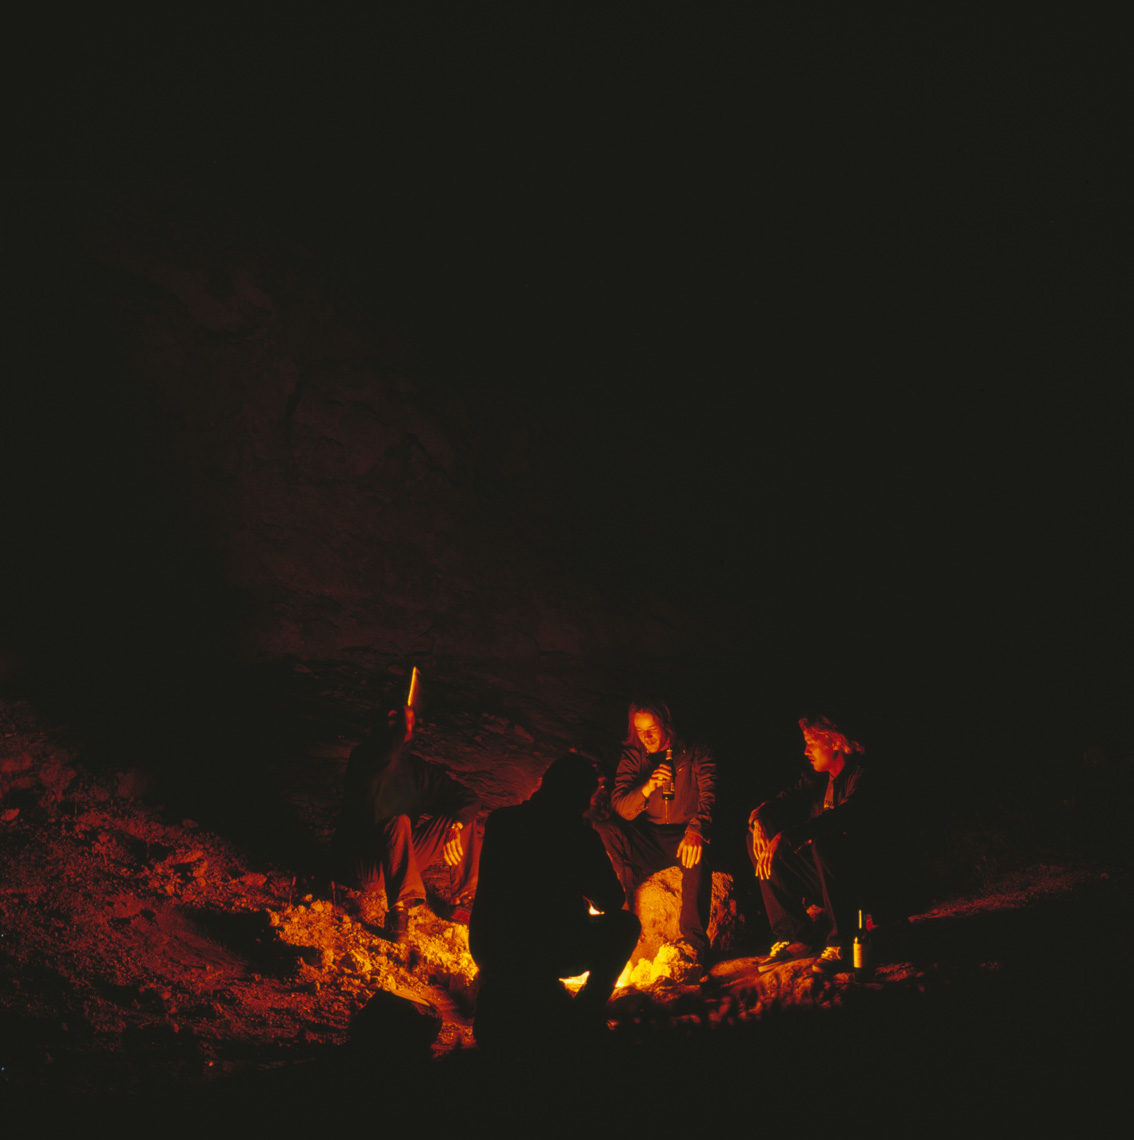 arizona-campfire-2004-for-christine-no-logo-retouch.jpg